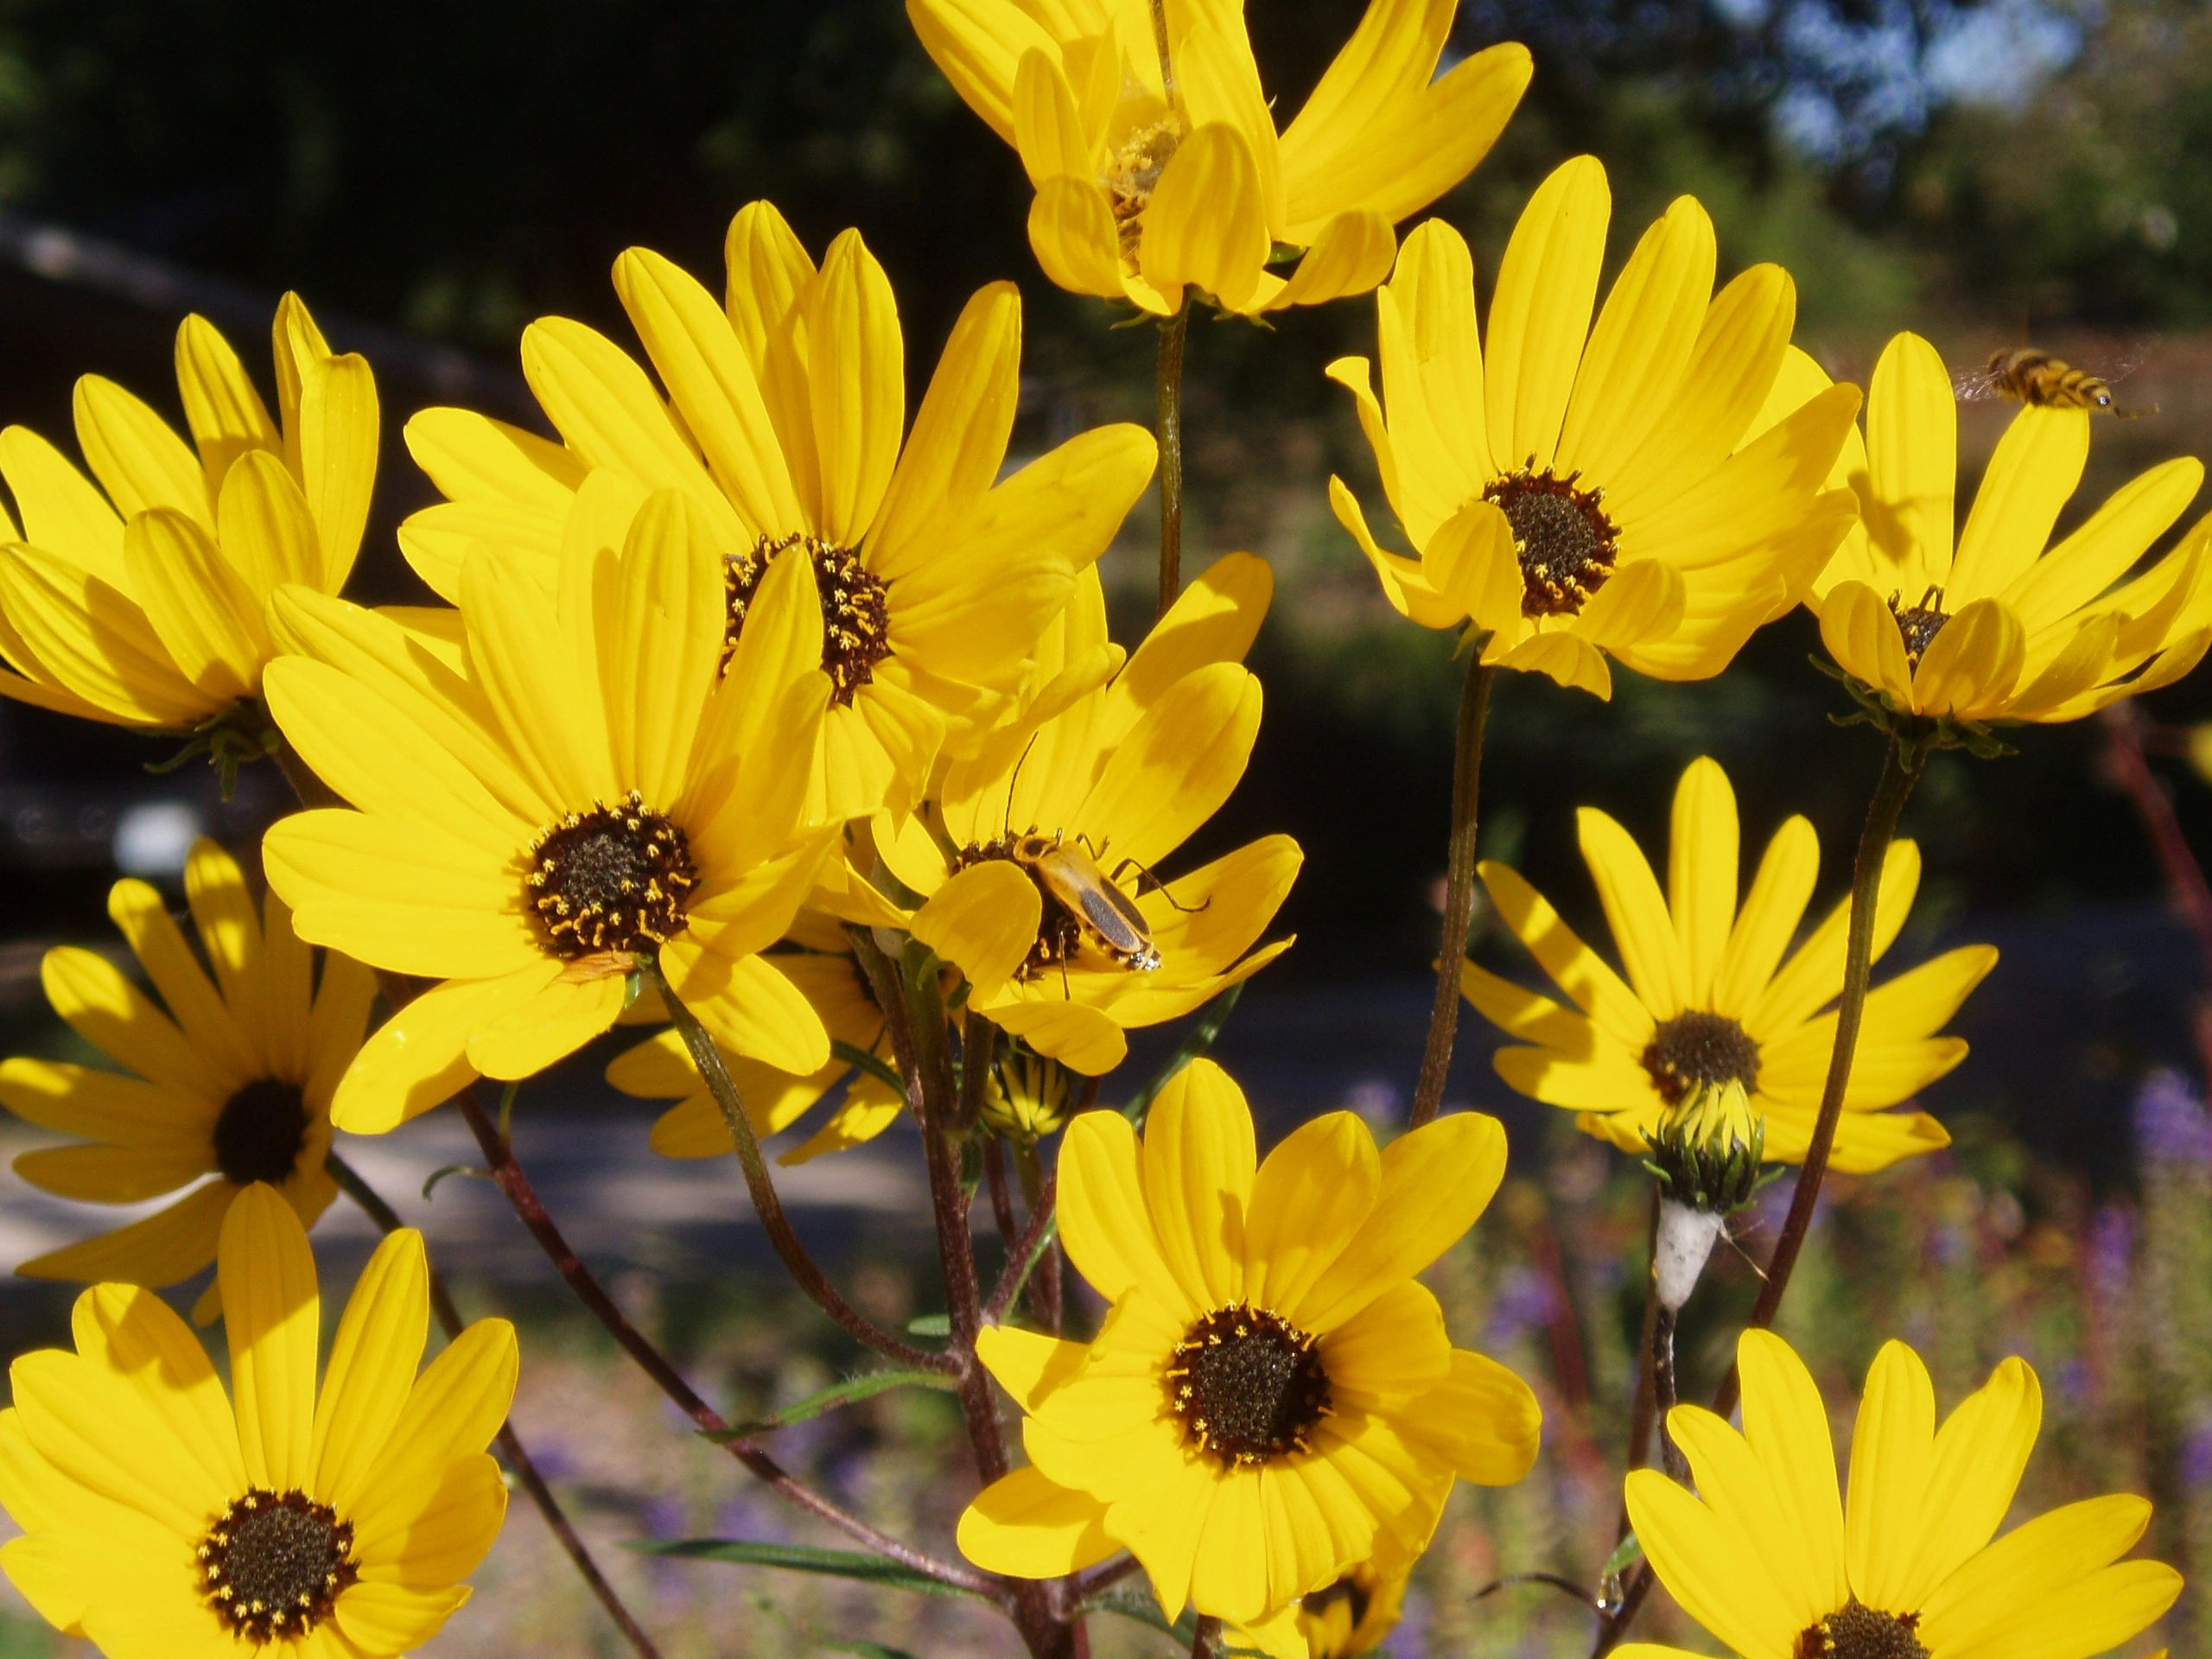 "{""blocks"":[{""key"":""2vo4"",""text"":"" Helianthus angustifolius Swamp Sunflower -  potted plants john@easywildflowers.com  "",""type"":""unstyled"",""depth"":0,""inlineStyleRanges"":[],""entityRanges"":[],""data"":{}}],""entityMap"":{}}"